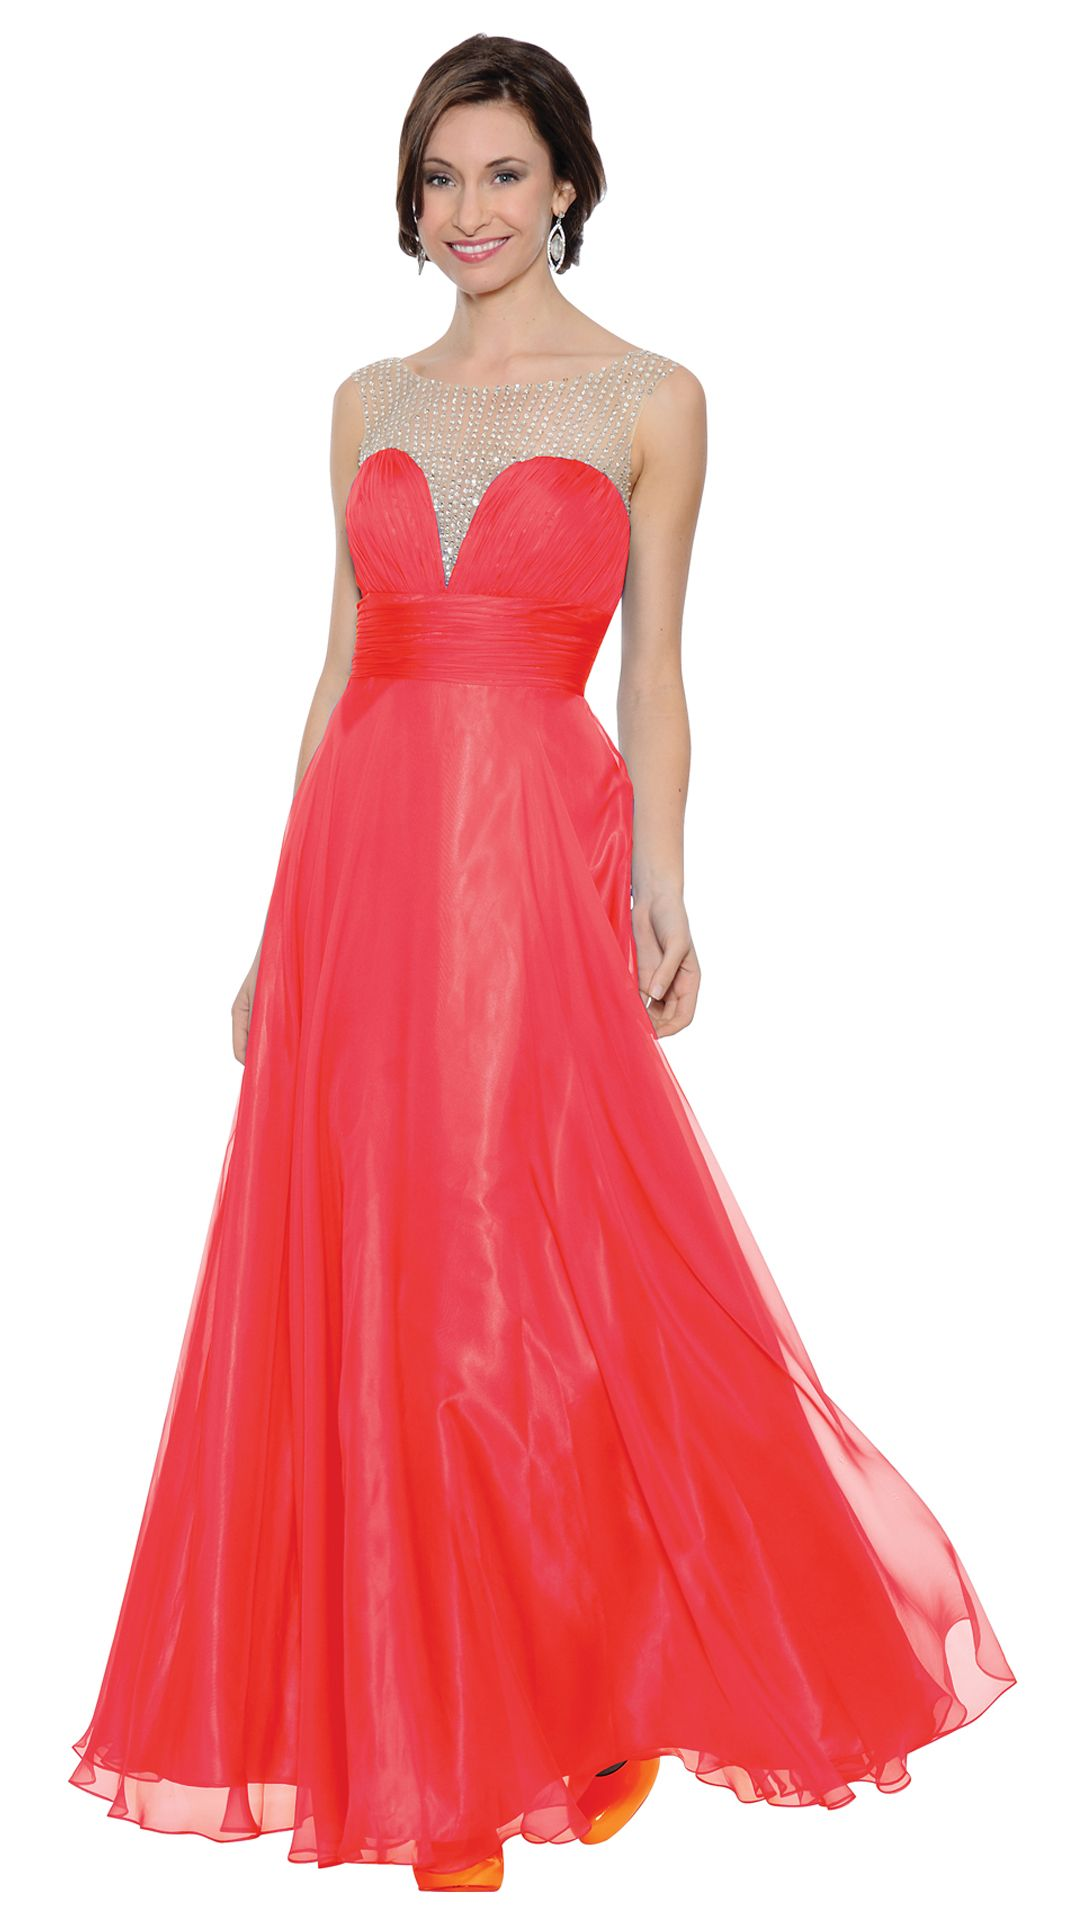 b9a52cd35 Beautiful Evening Gowns With Sleeves - raveitsafe